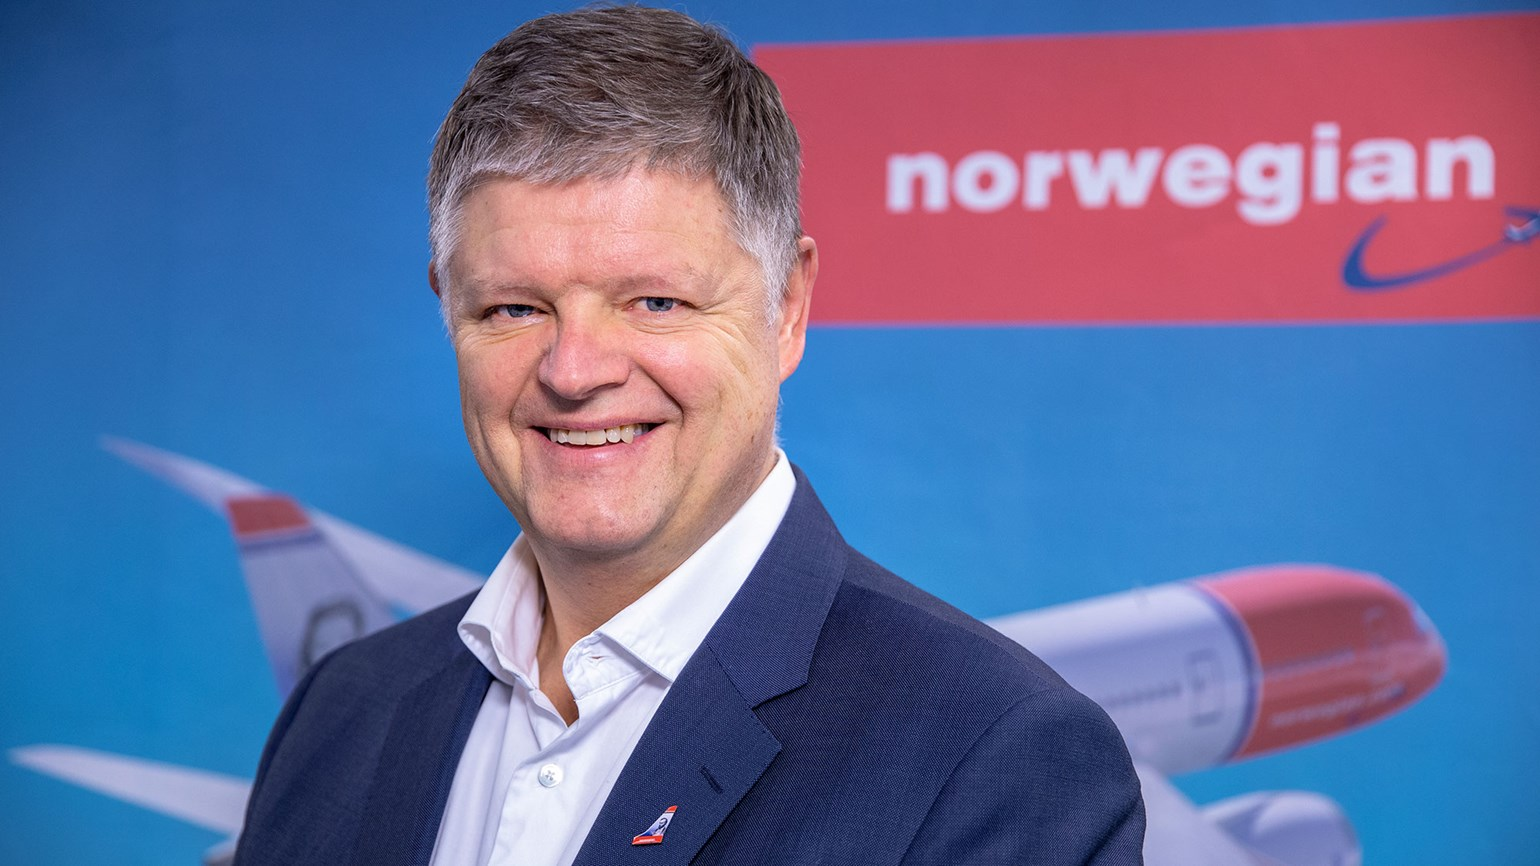 Norwegian Air names Jacob Schram CEO